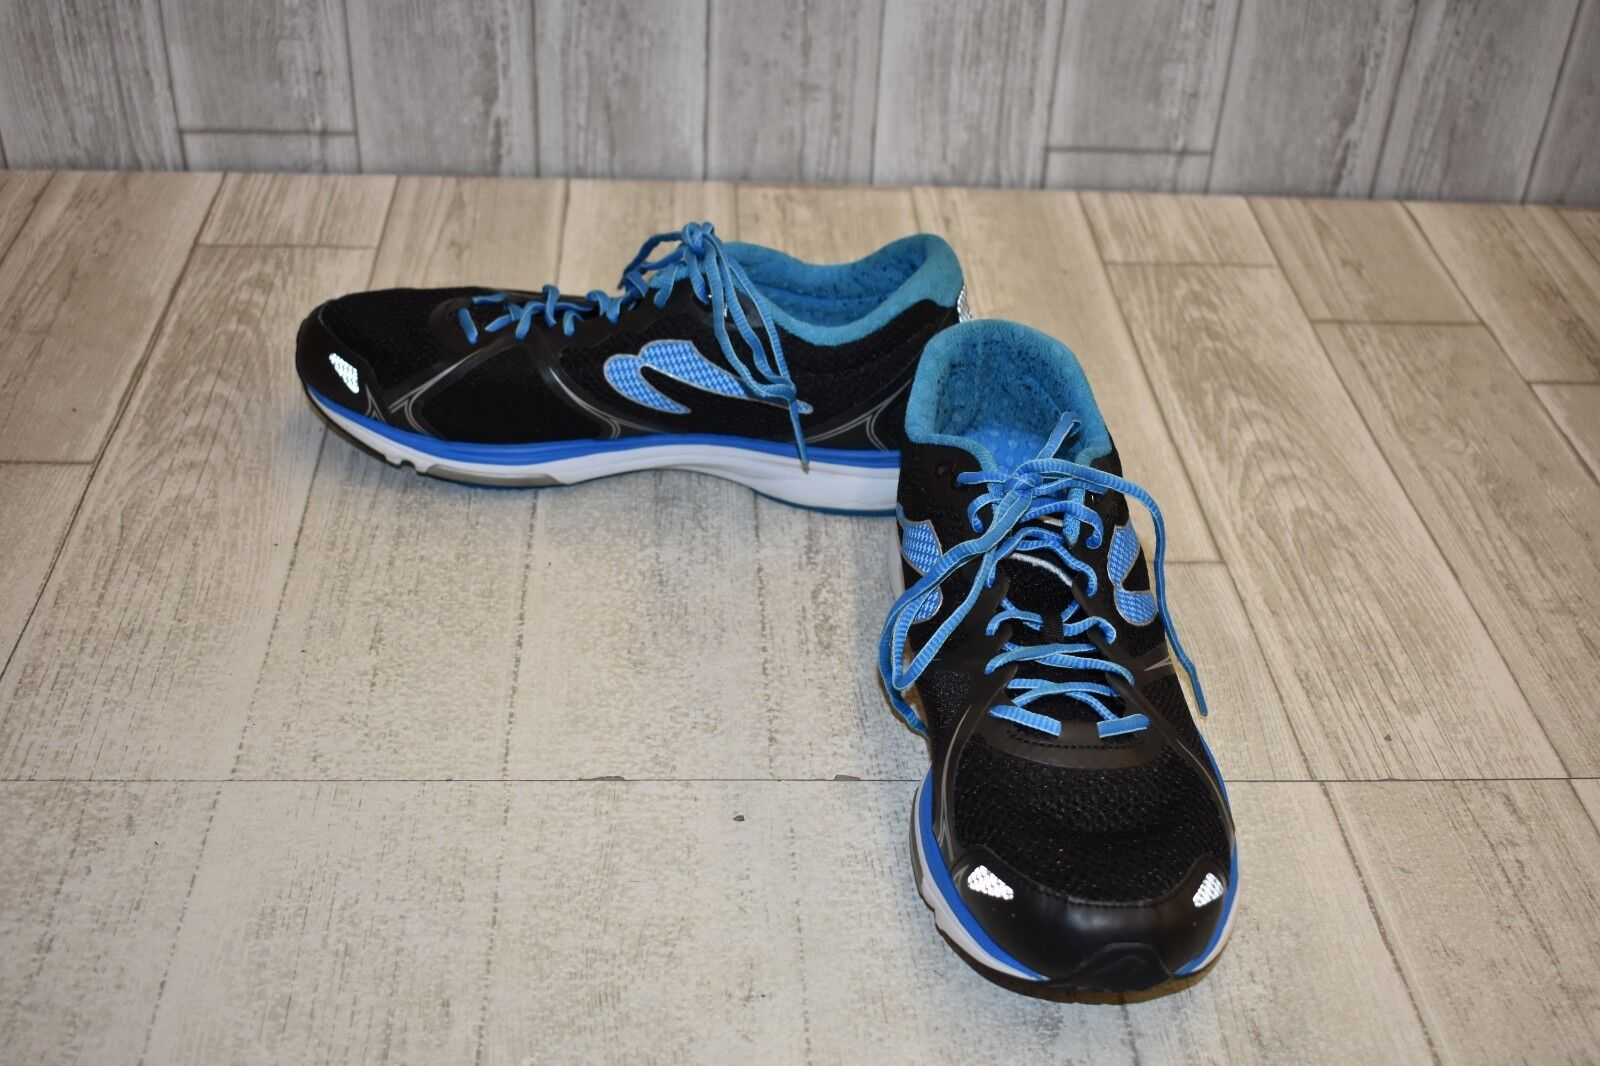 Newton Fate 3 Running shoes, Men's Size 13, Black bluee